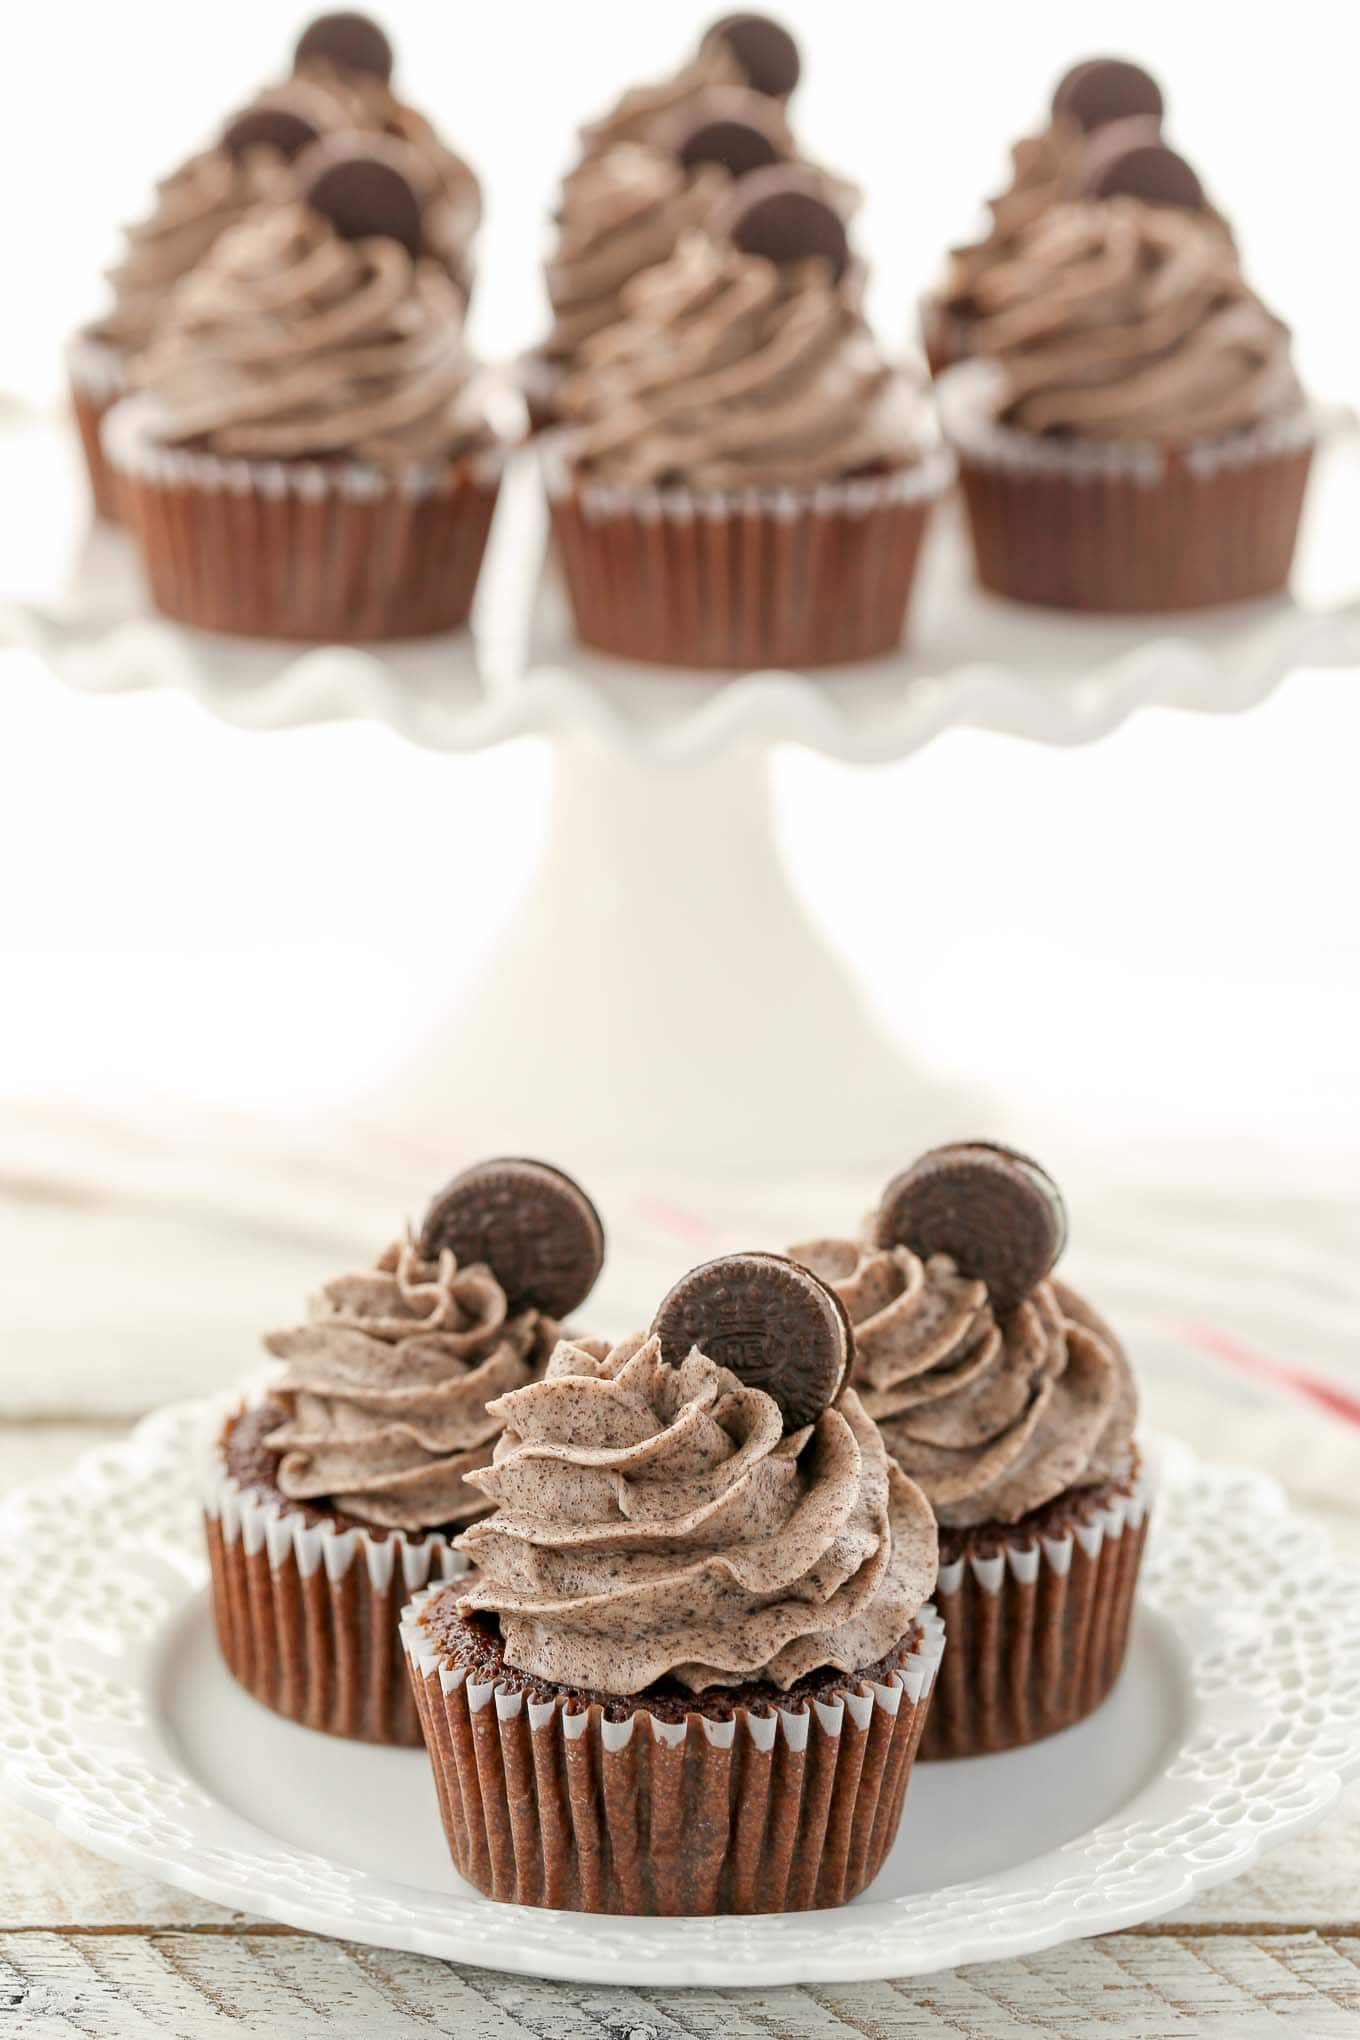 Three oreo cupcakes on a white plate. More cupcakes rest on a cake stand in the background.